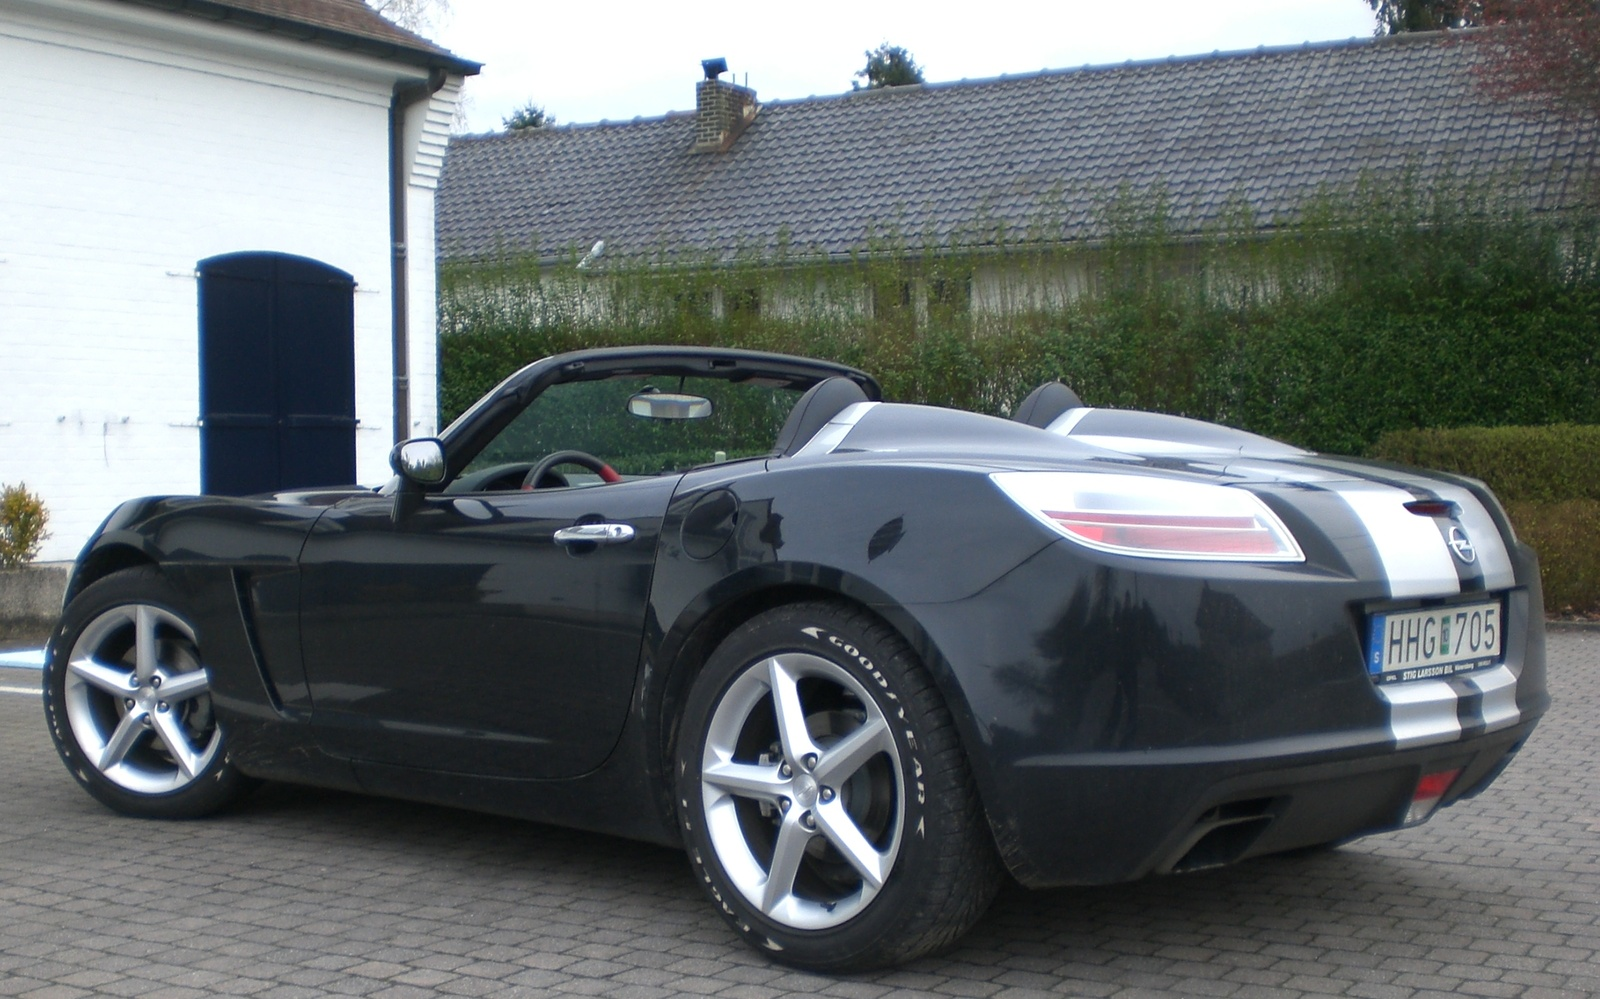 Picture of 2007 opel gt exterior